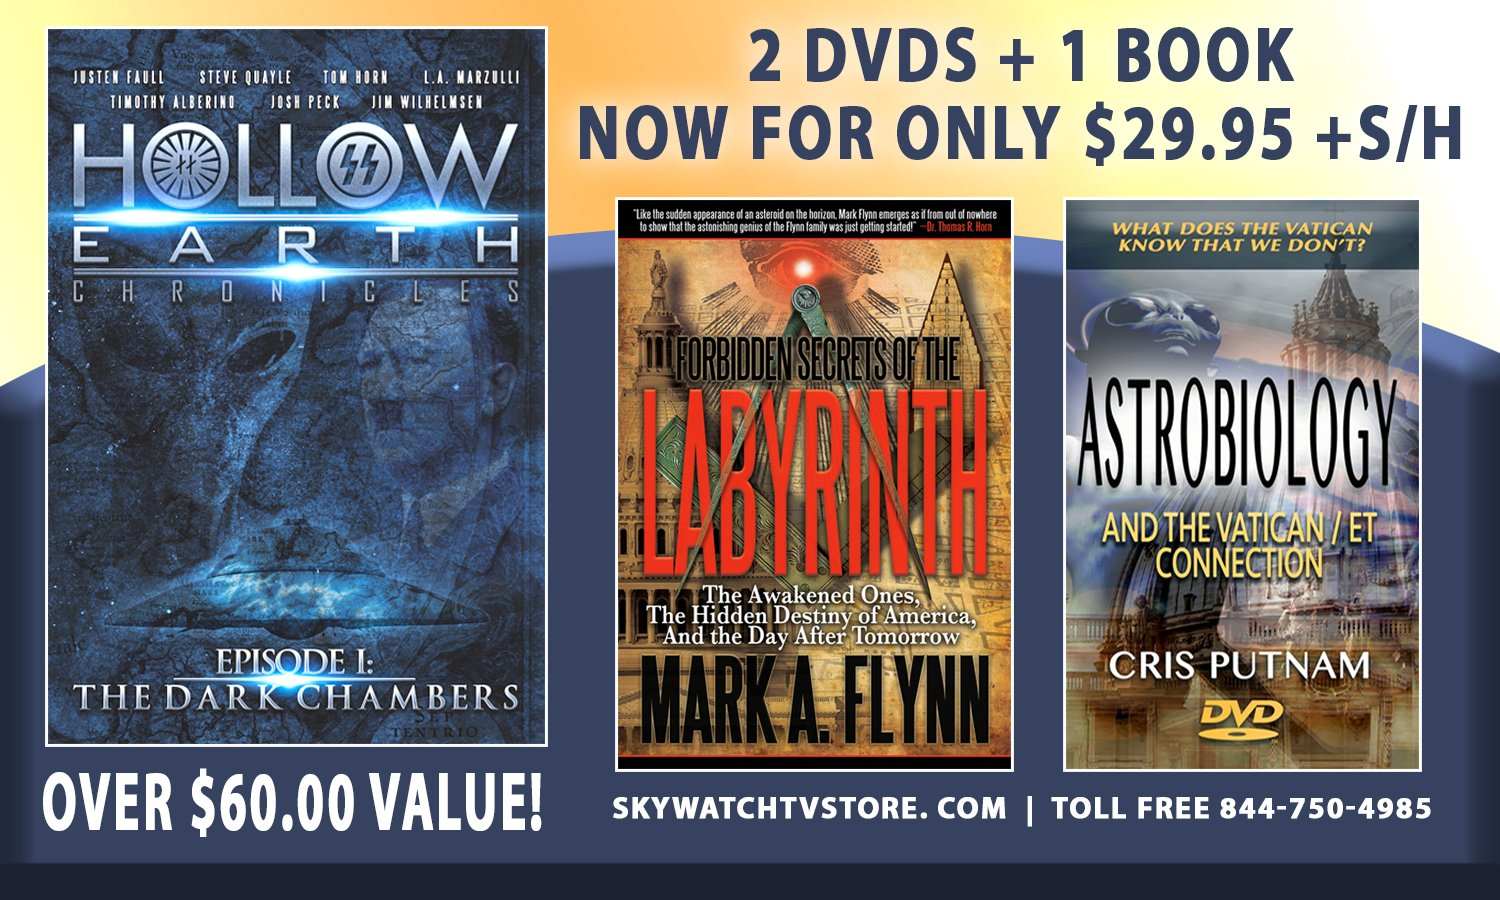 GET THE LIMITED TIME HOLLOW EARTH SPECIAL (INCLUDES CRIS PUTNAM'S FINAL DVD ON VATICAN)!